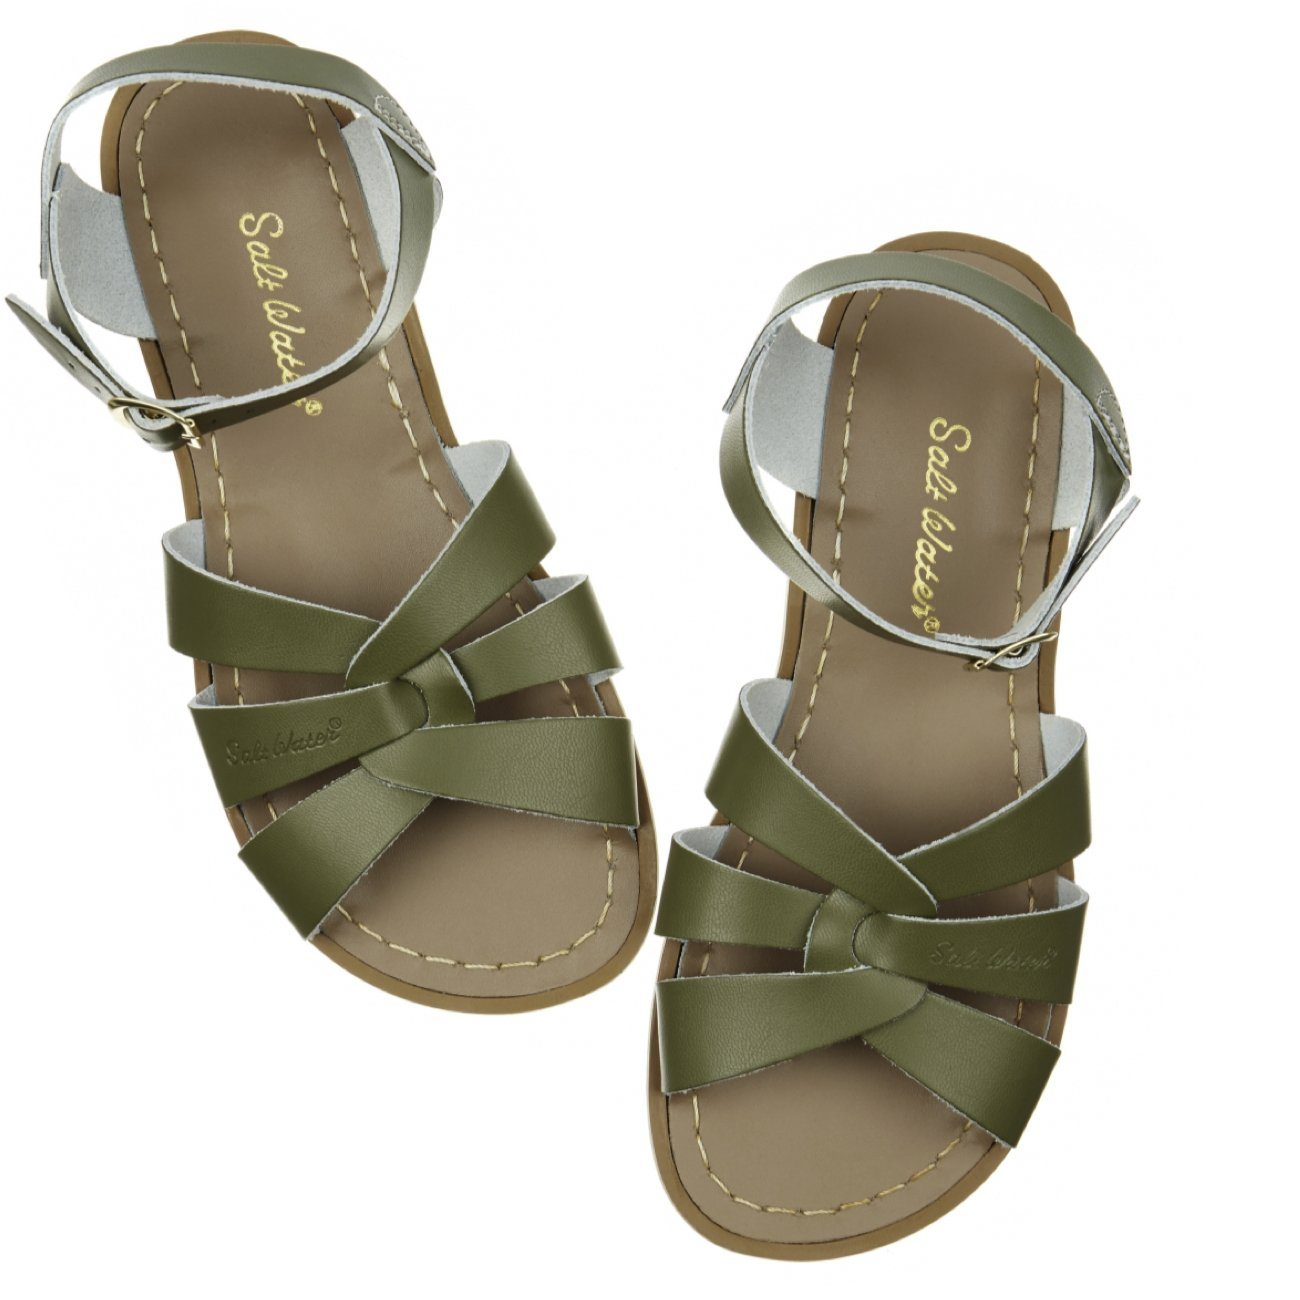 Salt Water Sandals, Original, Child, Olive Sandals Salt Water Sandals Olive 10